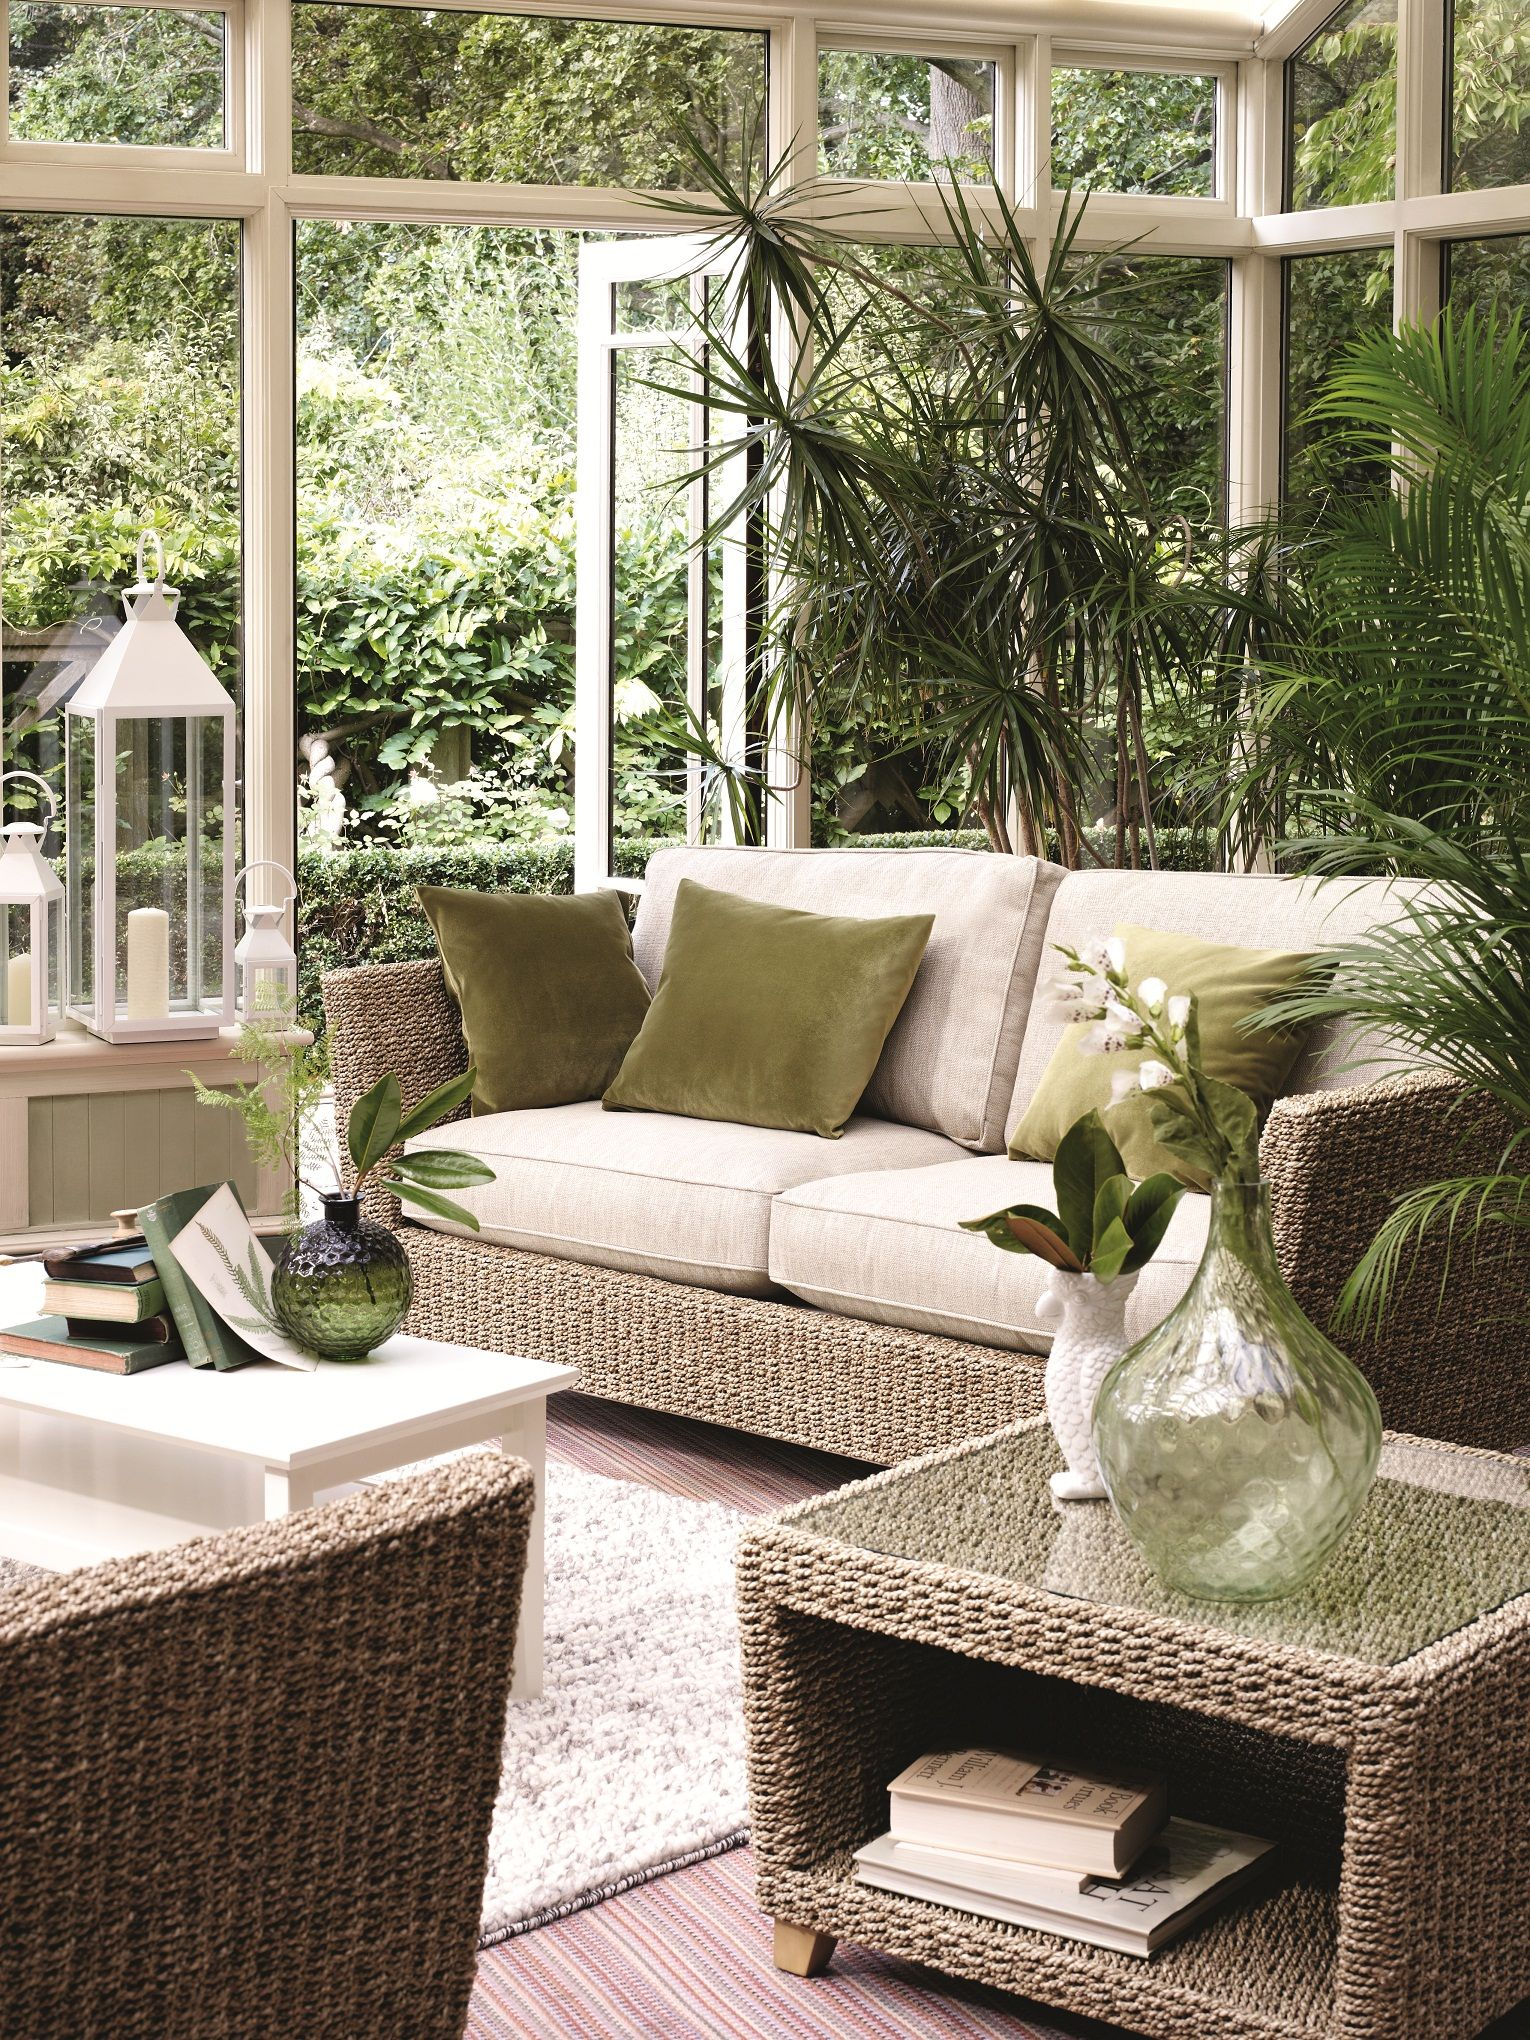 Enjoy The Beauty Of Nature With Sofa Set Designs For Outdoor